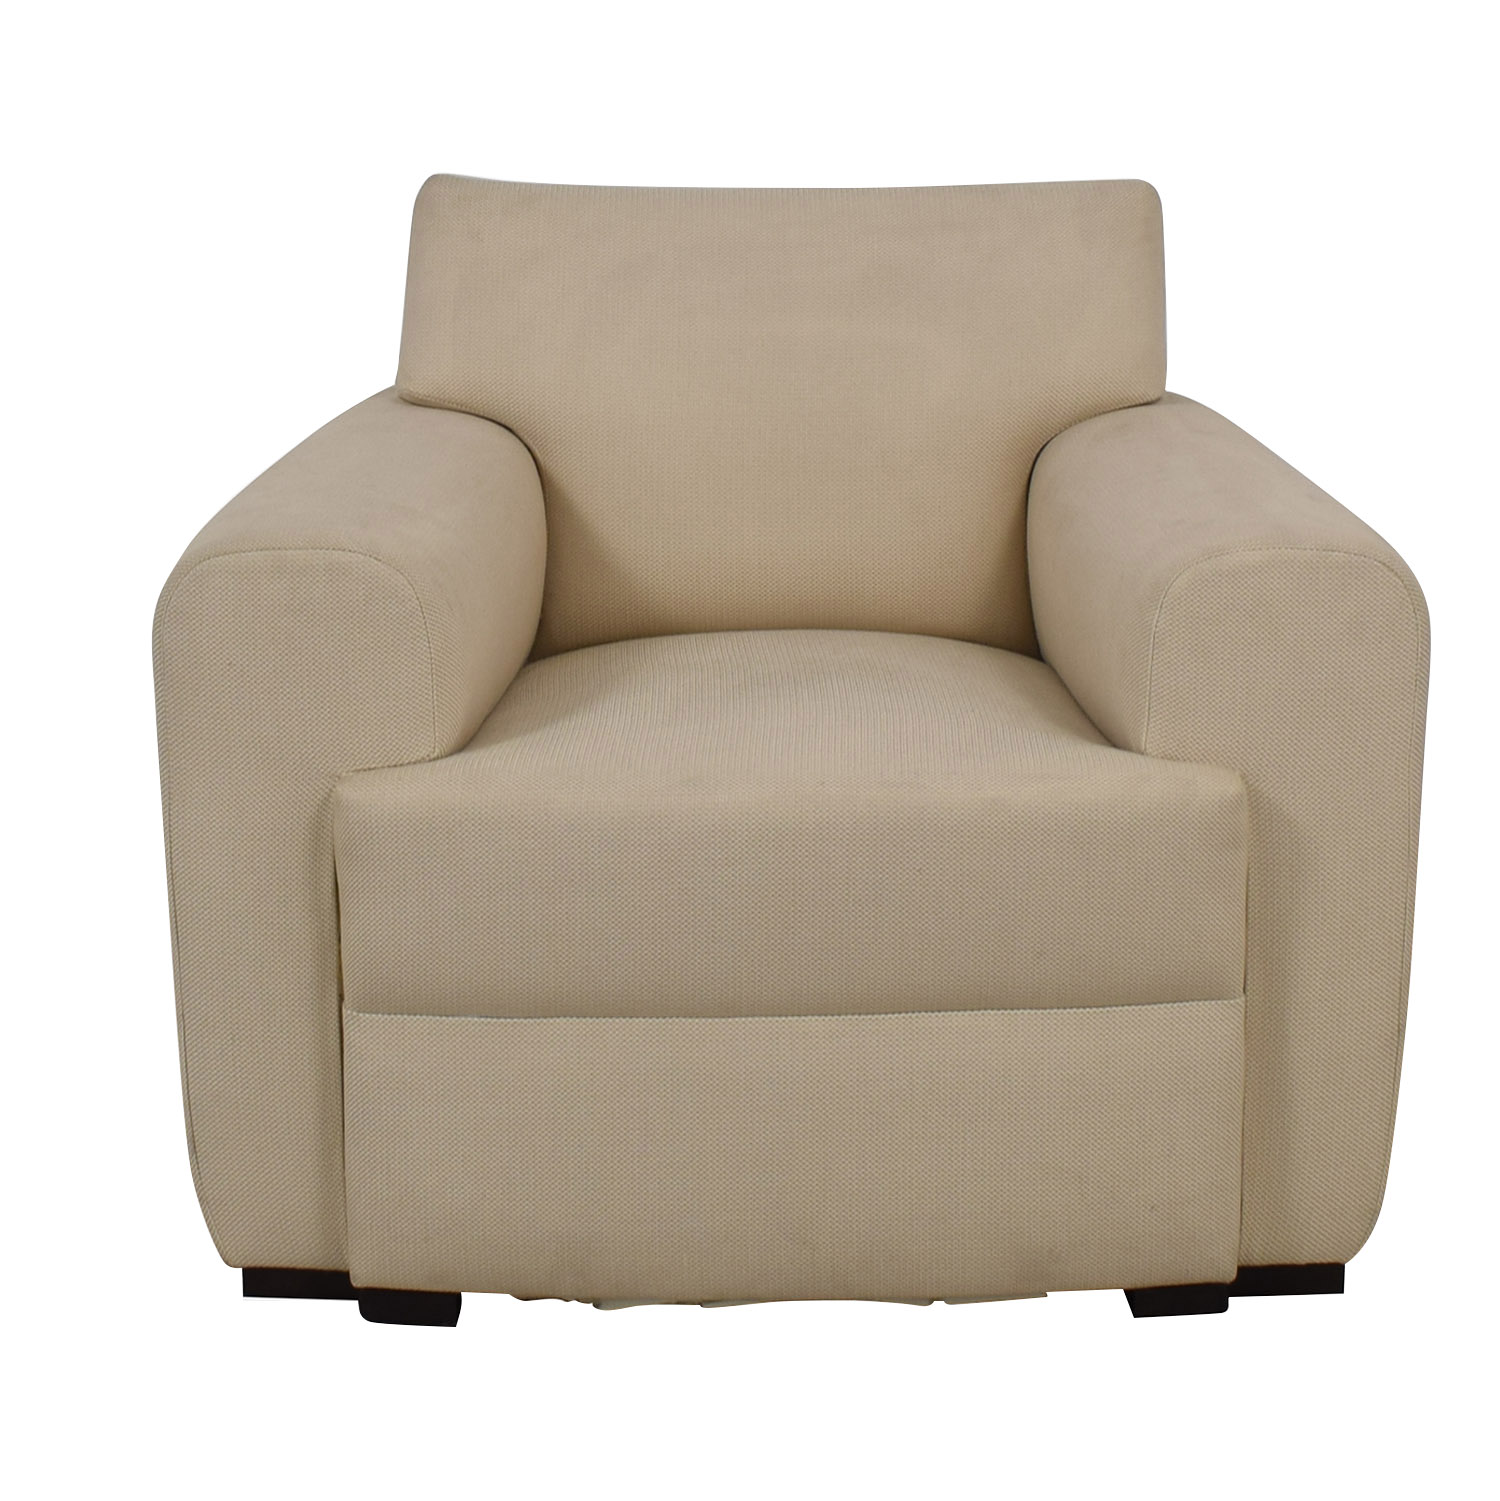 shop Furniture Masters White Accent Chair Furniture Masters Accent Chairs